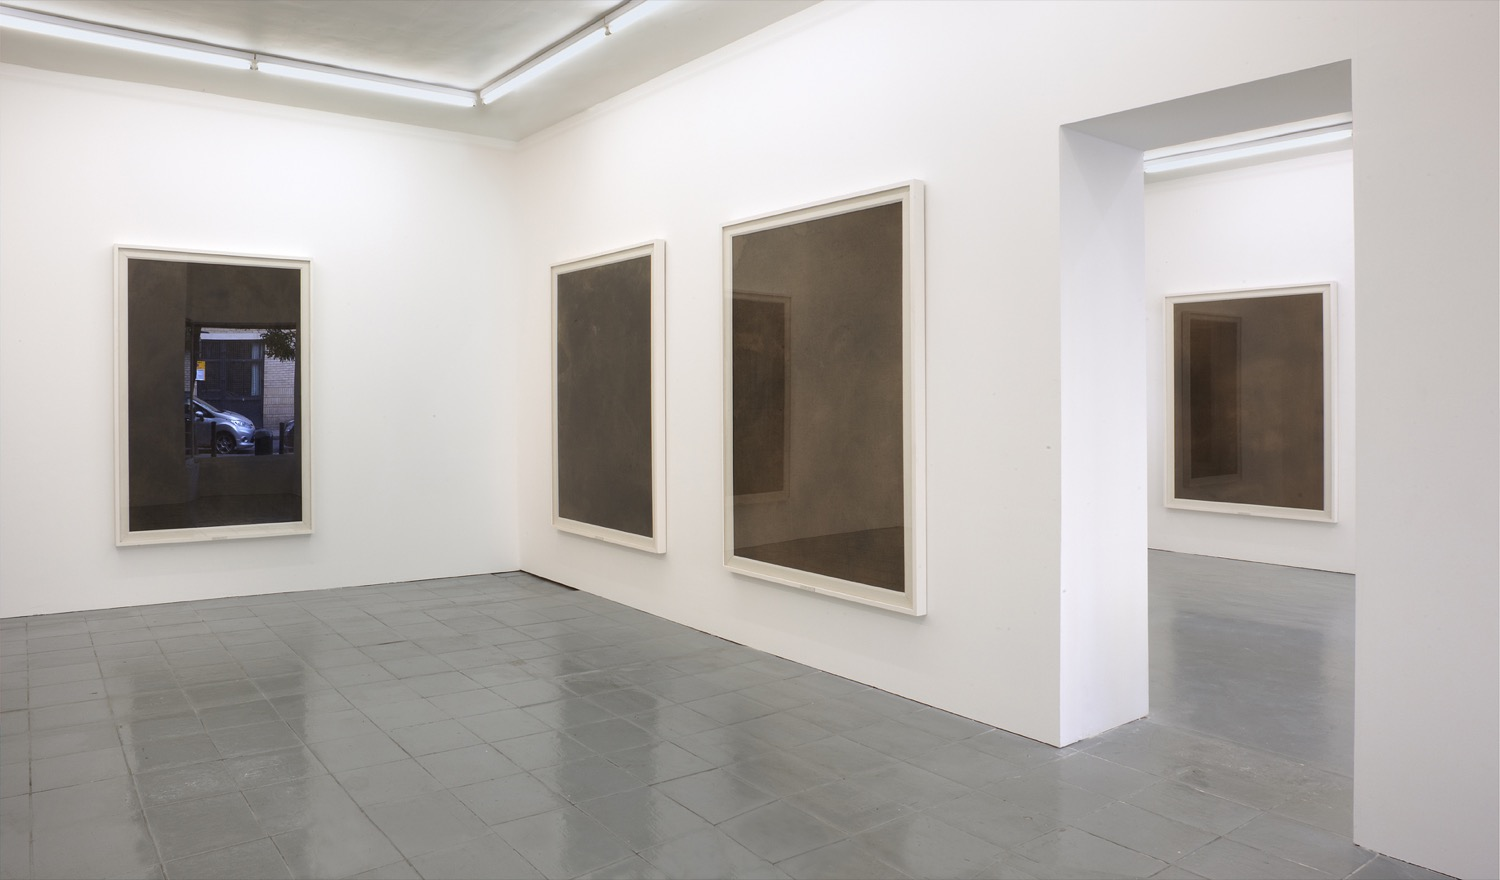 Installation view at PEER. Photo: Peter White